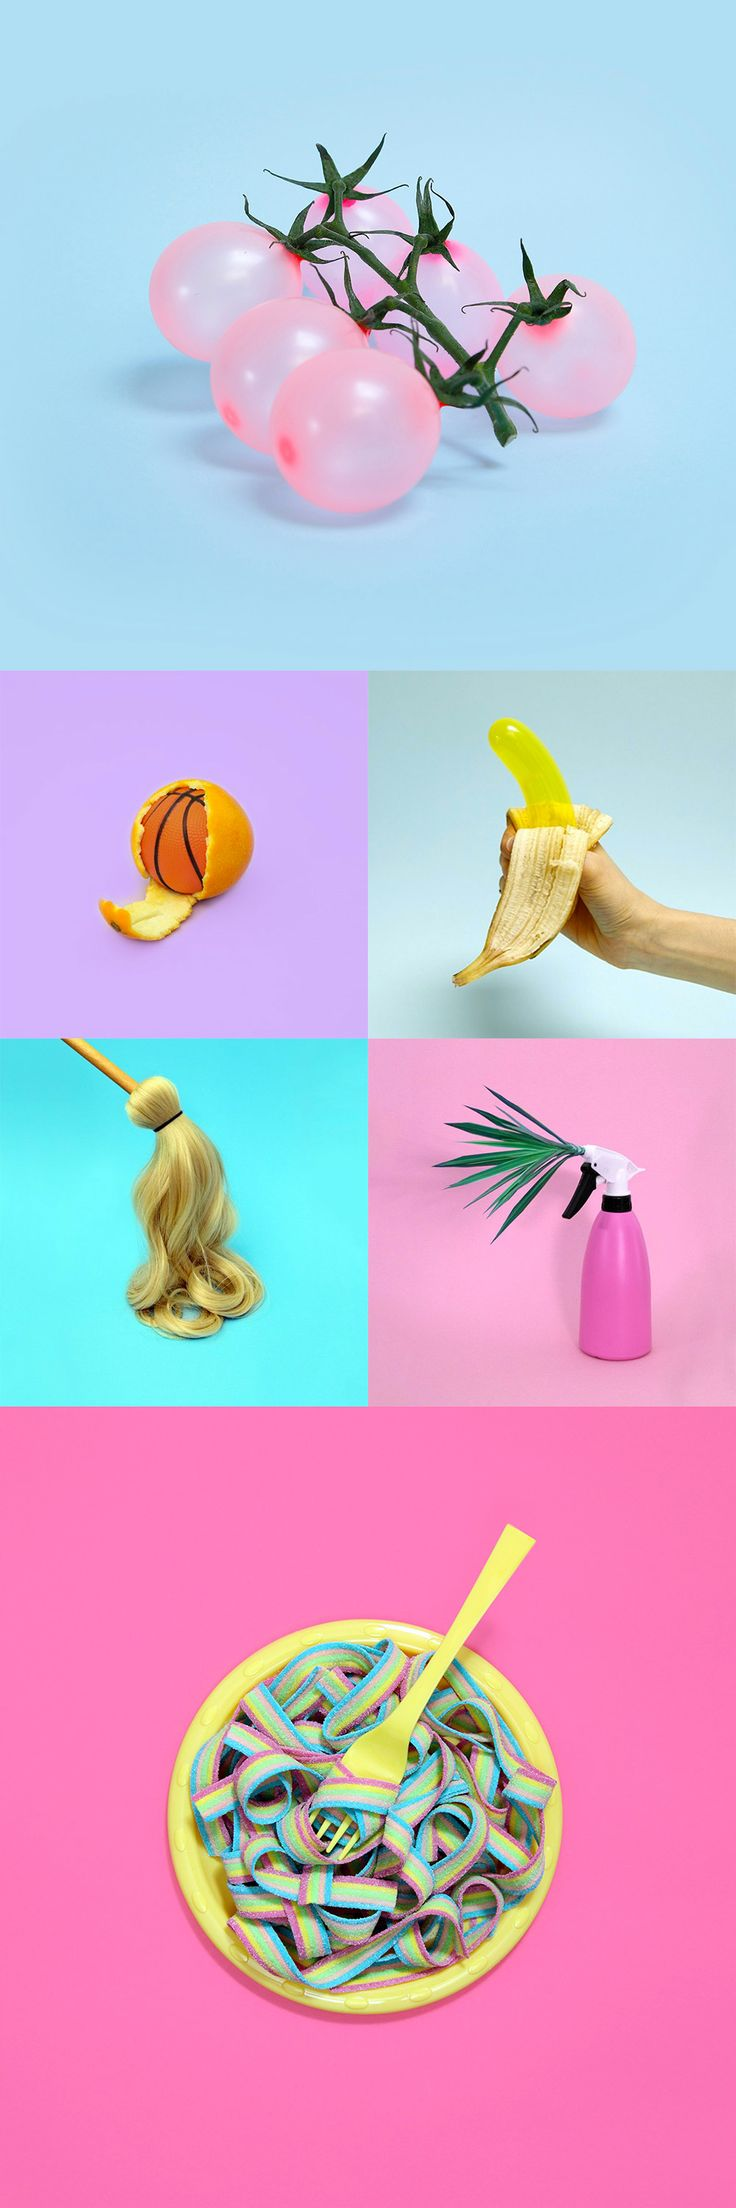 Quirky Interpretations of Everyday Objects by Vanessa McKeown #Photography